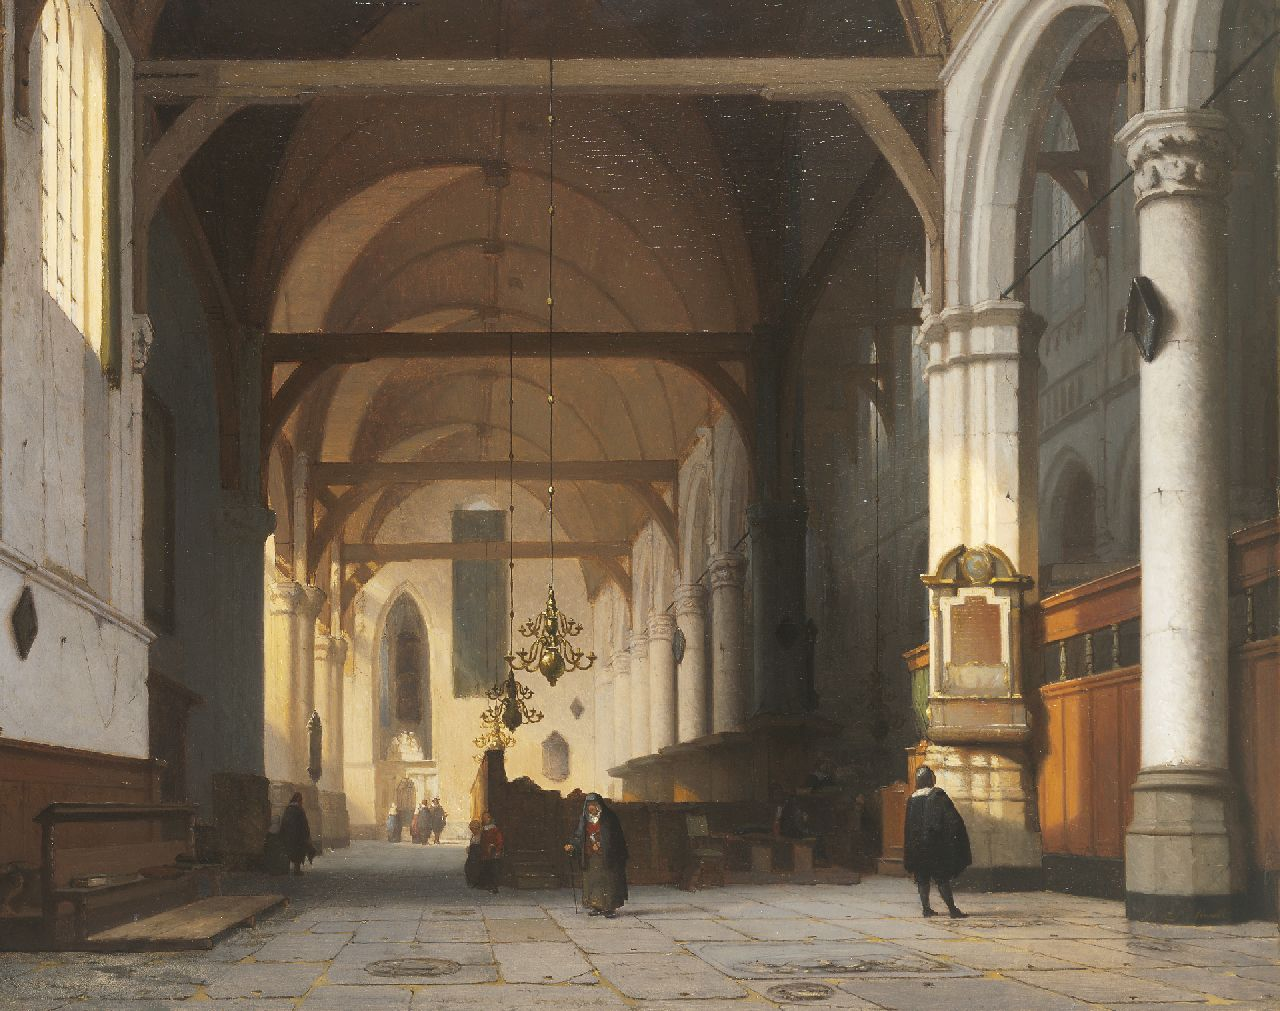 Schenkel J.J.  | Jan Jacob Schenkel, The interior of the 'Oude Kerk', Amsterdam, oil on panel 49.7 x 63.0 cm, signed l.r. (on the pillar)